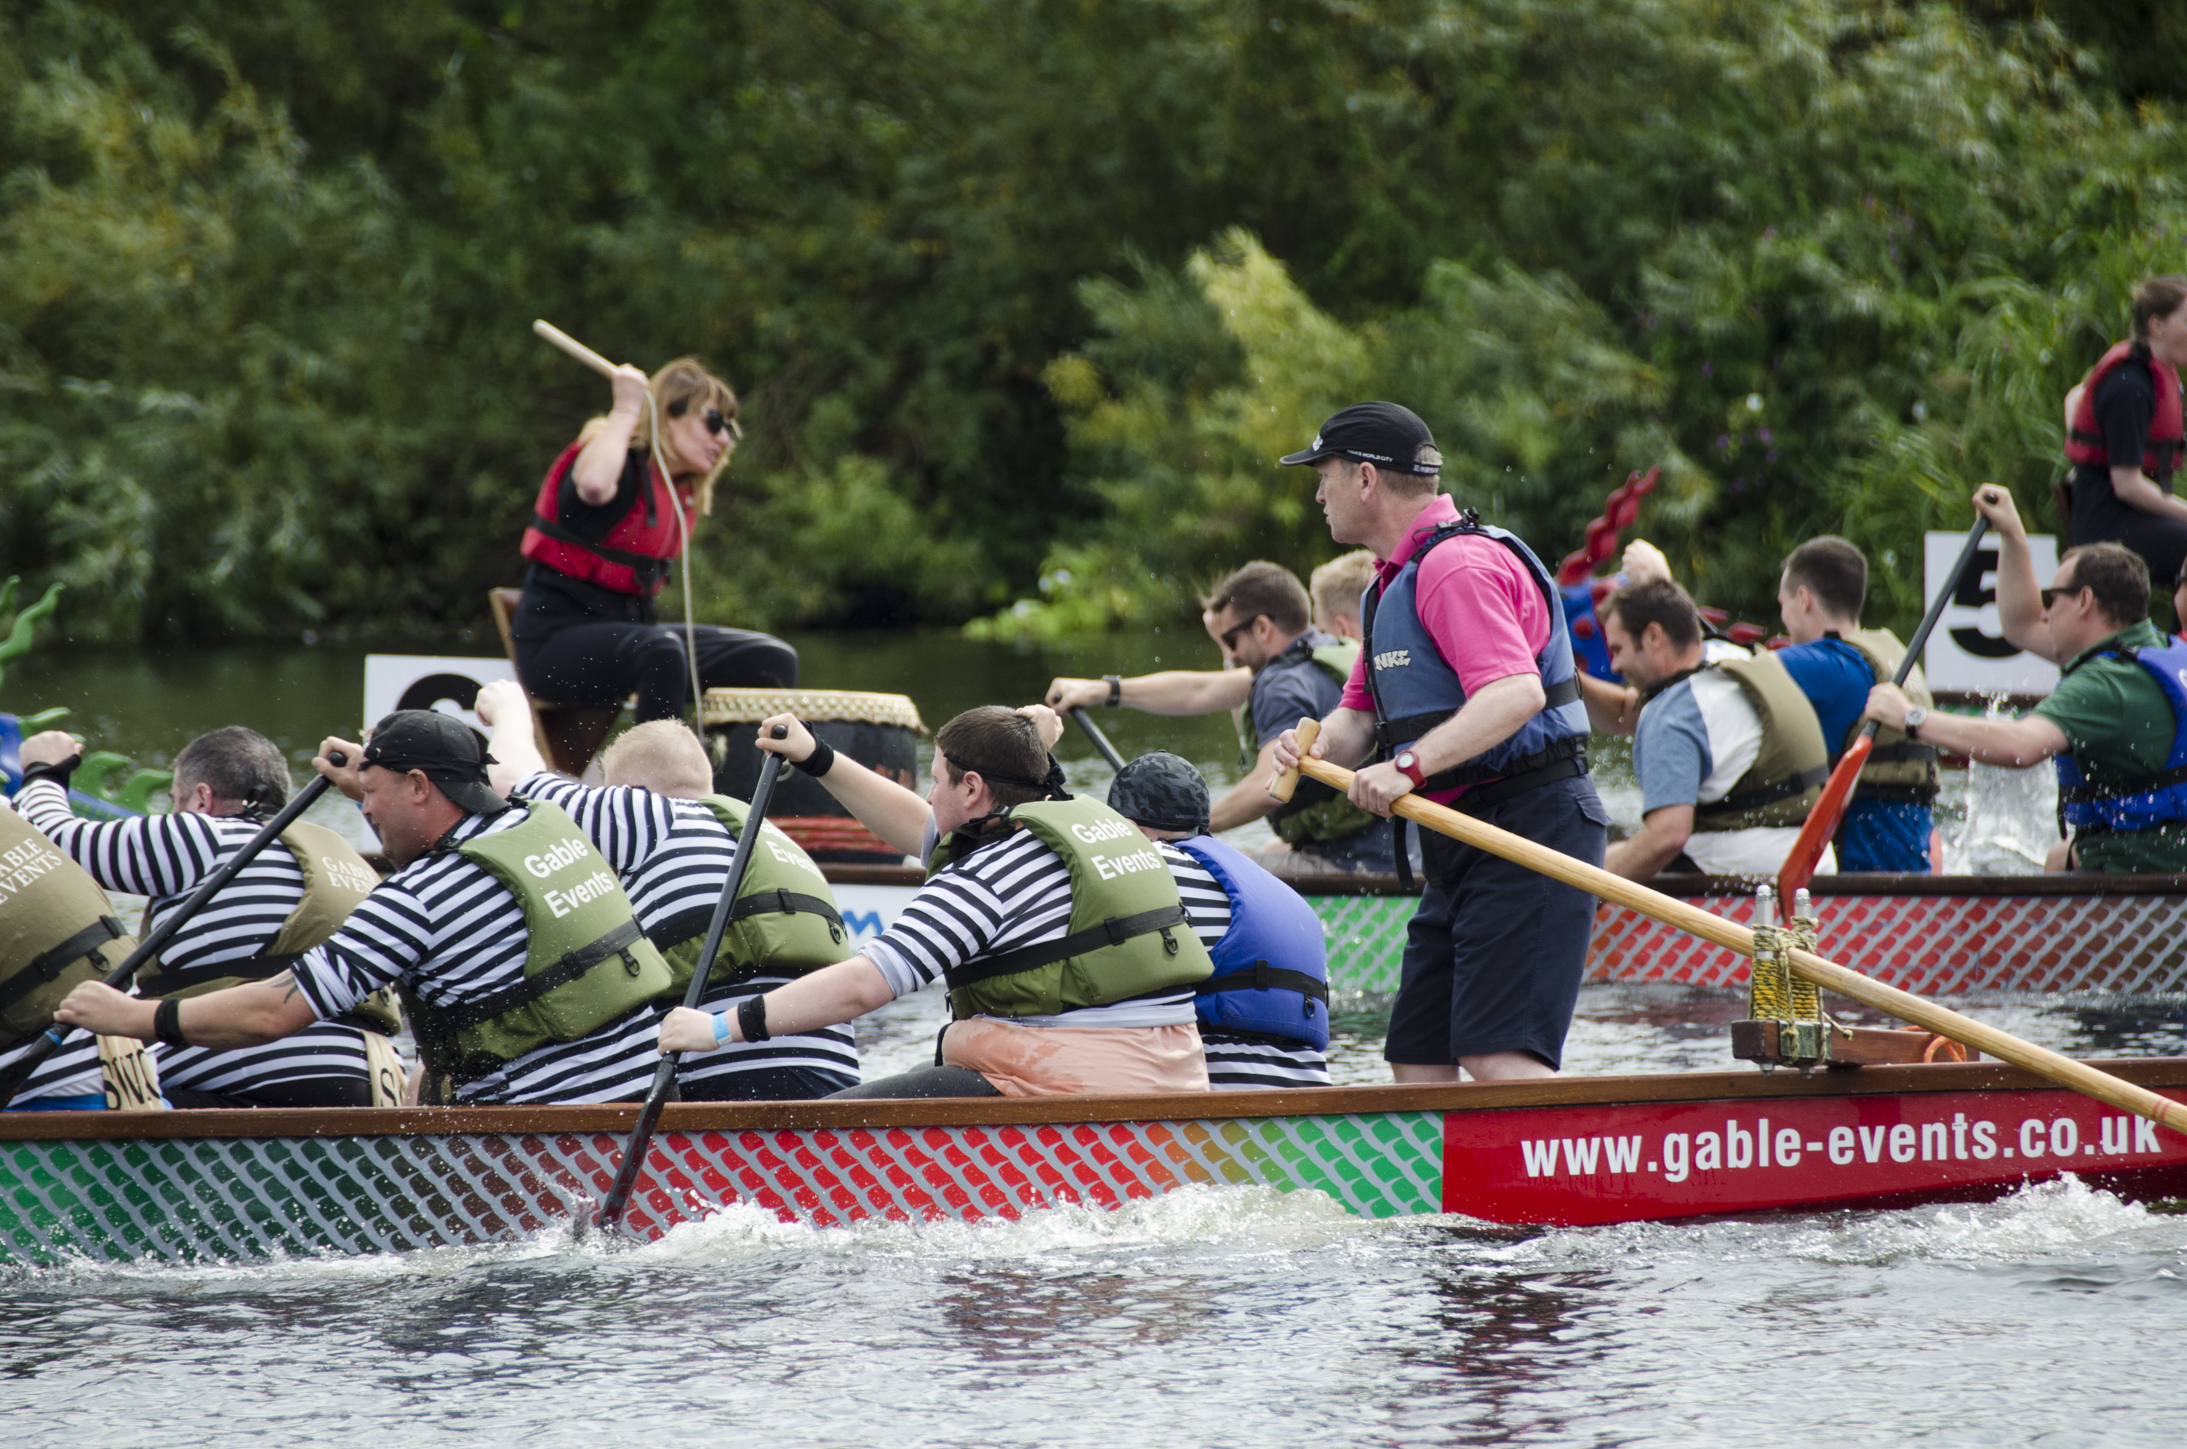 Dragons get ready to roar at the Nottingham Riverside Festival Dragon Boat Challenge on Sunday 4th August